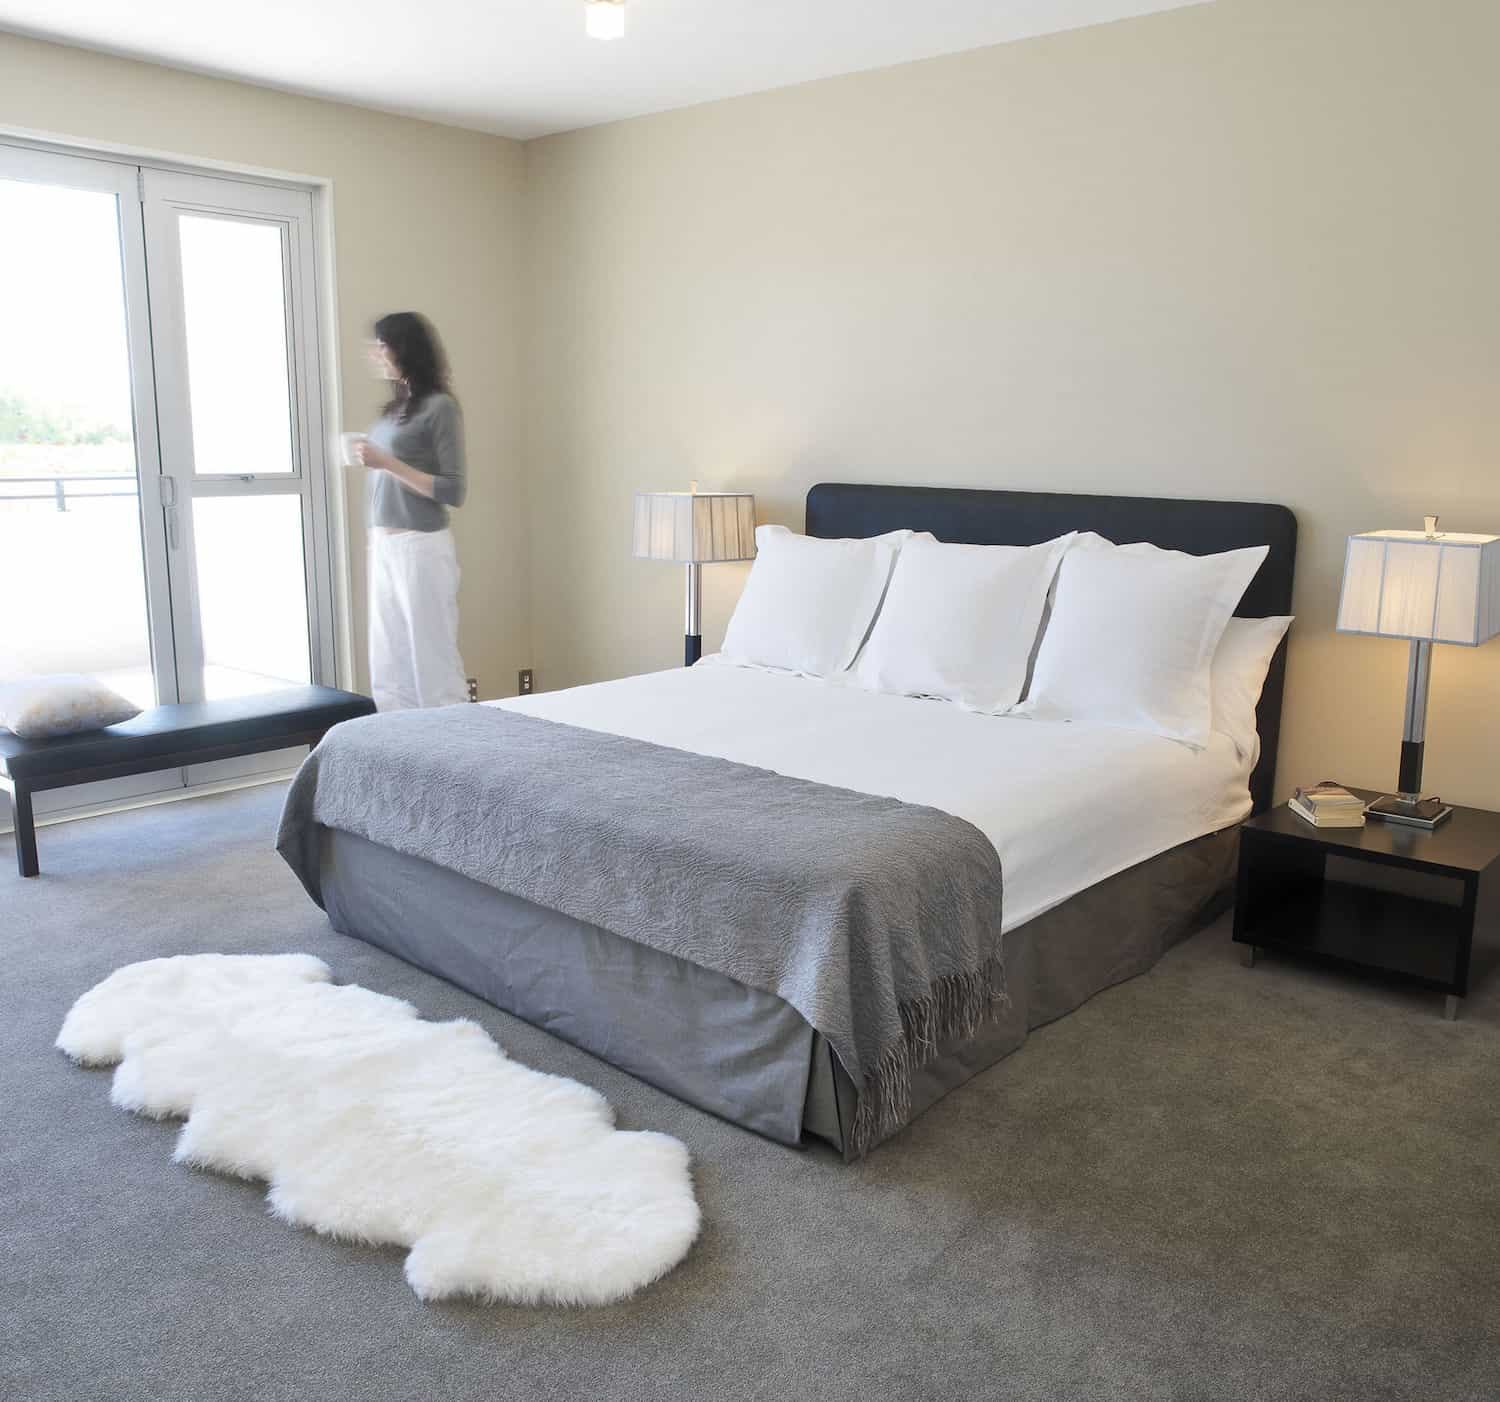 Minimalist Bedroom Decor With Double Pelt Sheepskin Rug (Image 13 of 15)